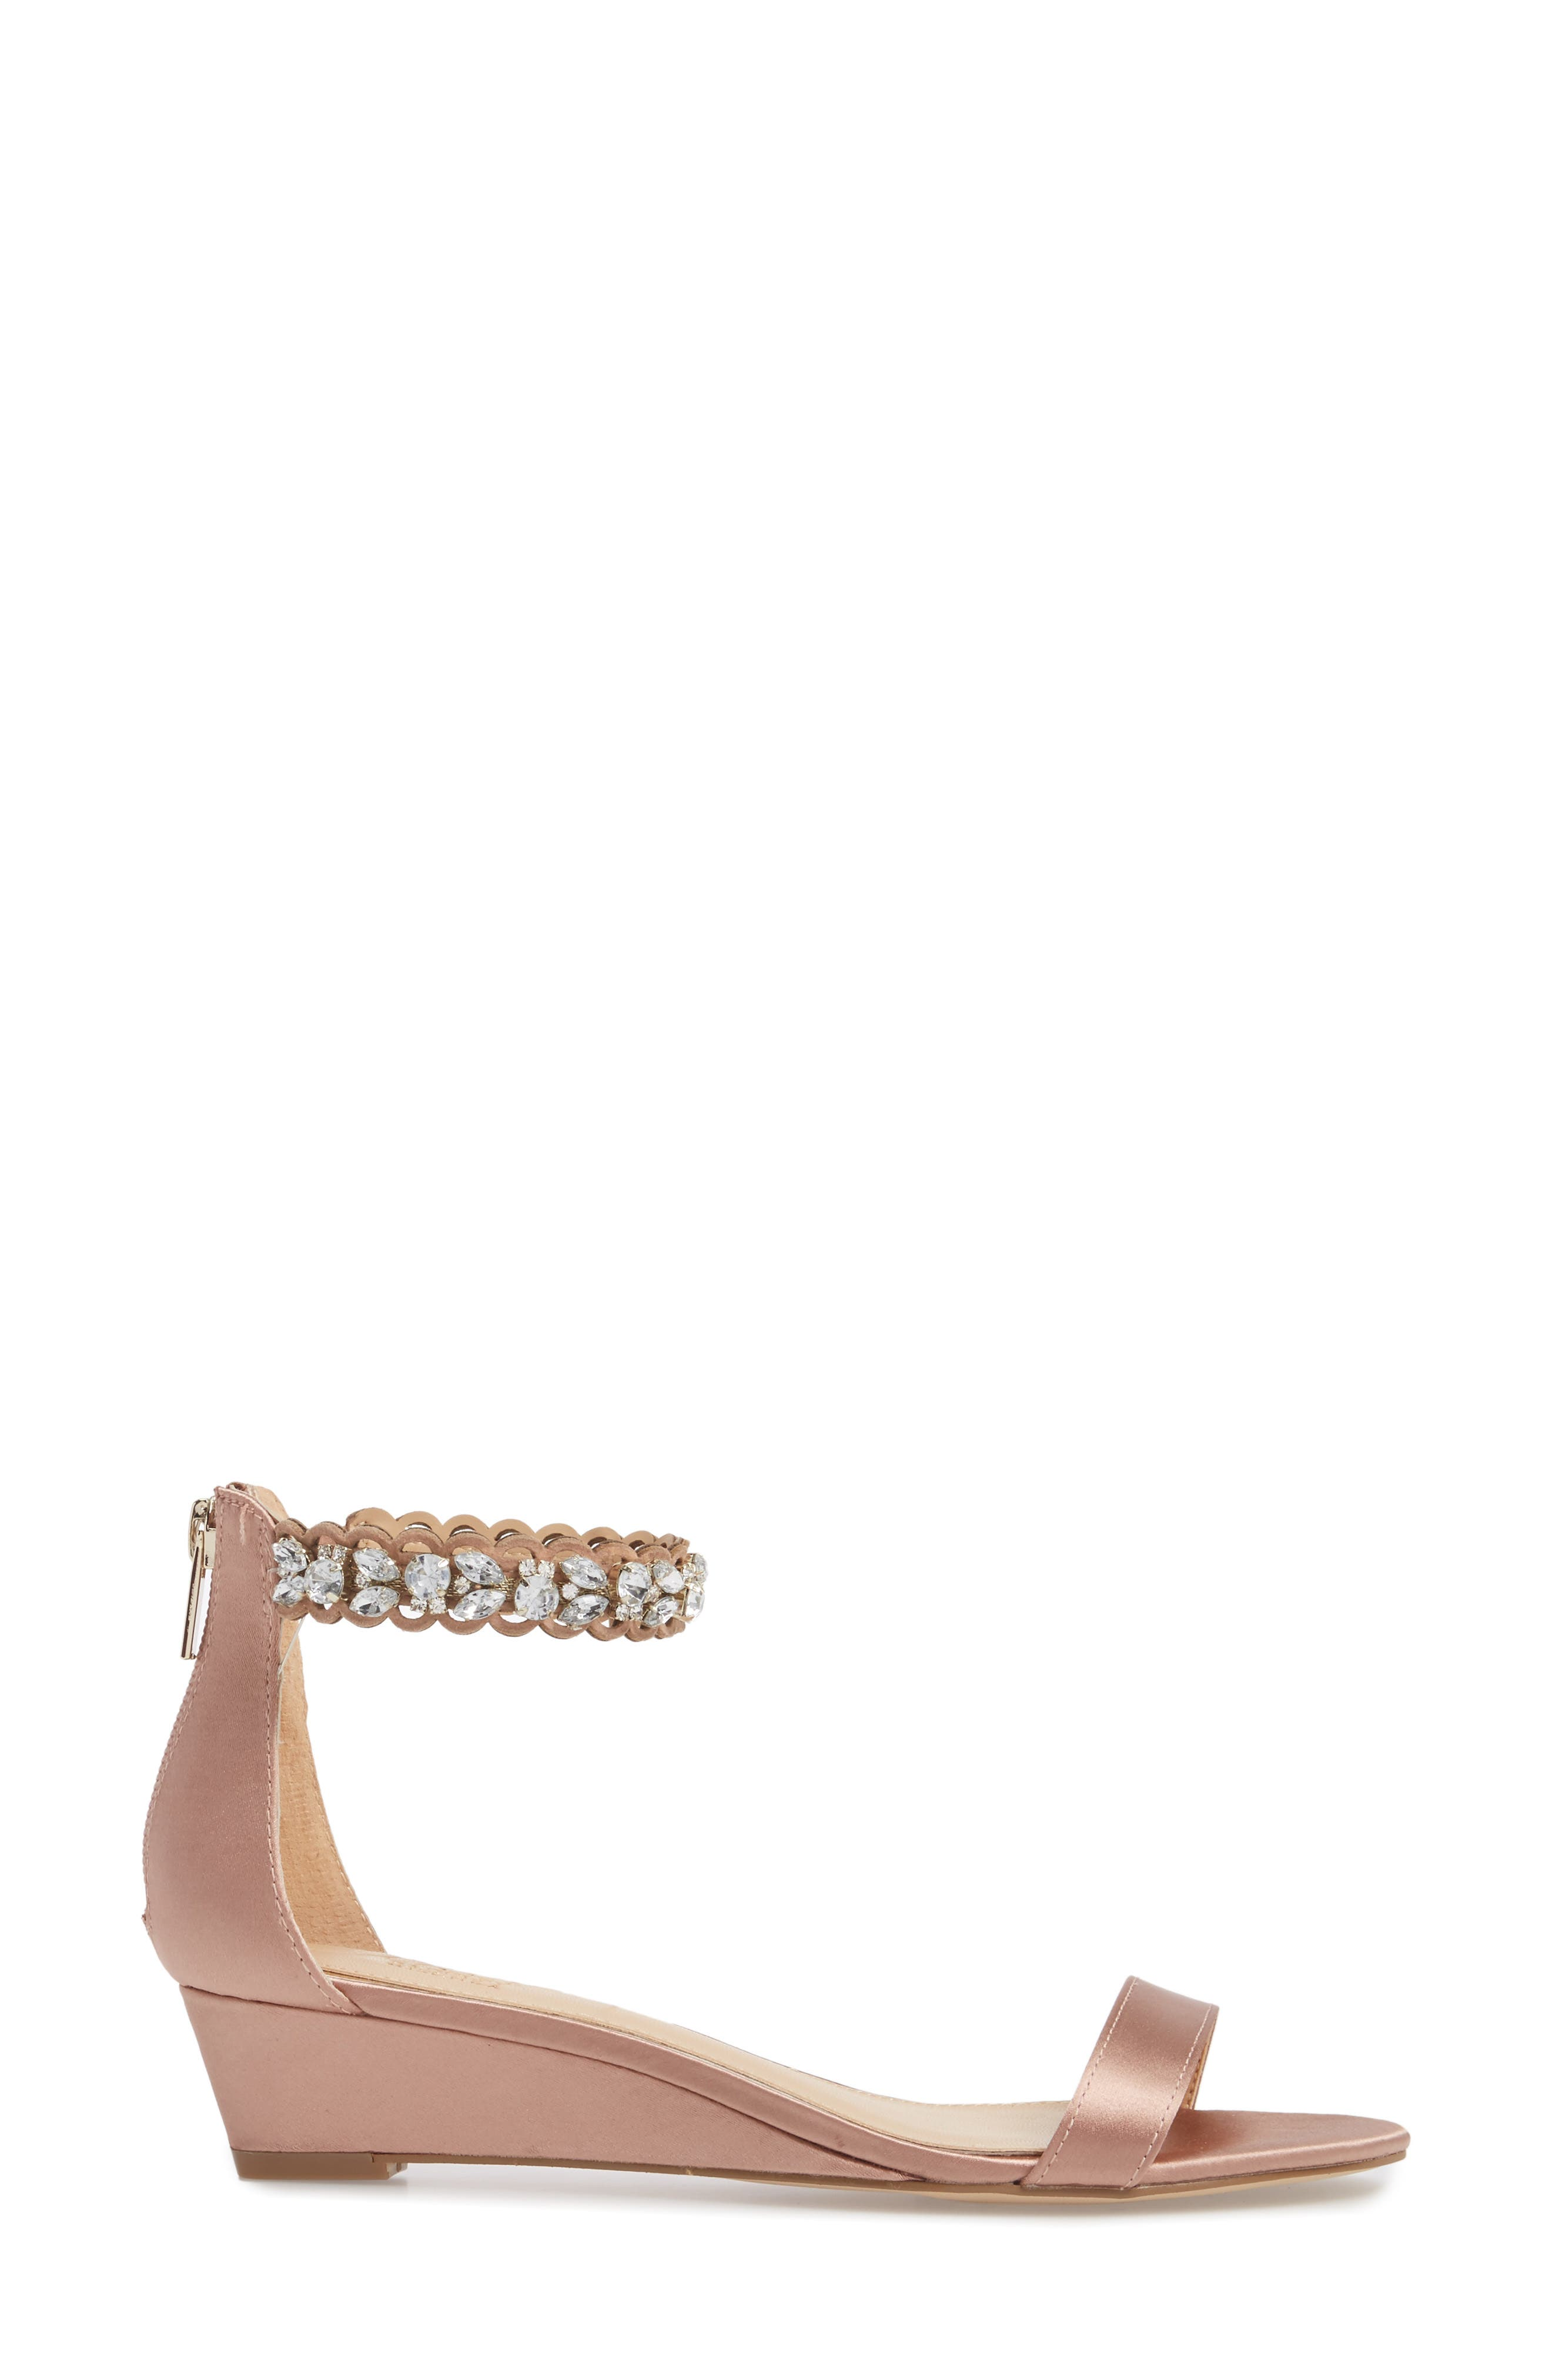 Ginger Wedge Sandal,                             Alternate thumbnail 3, color,                             Dark Blush